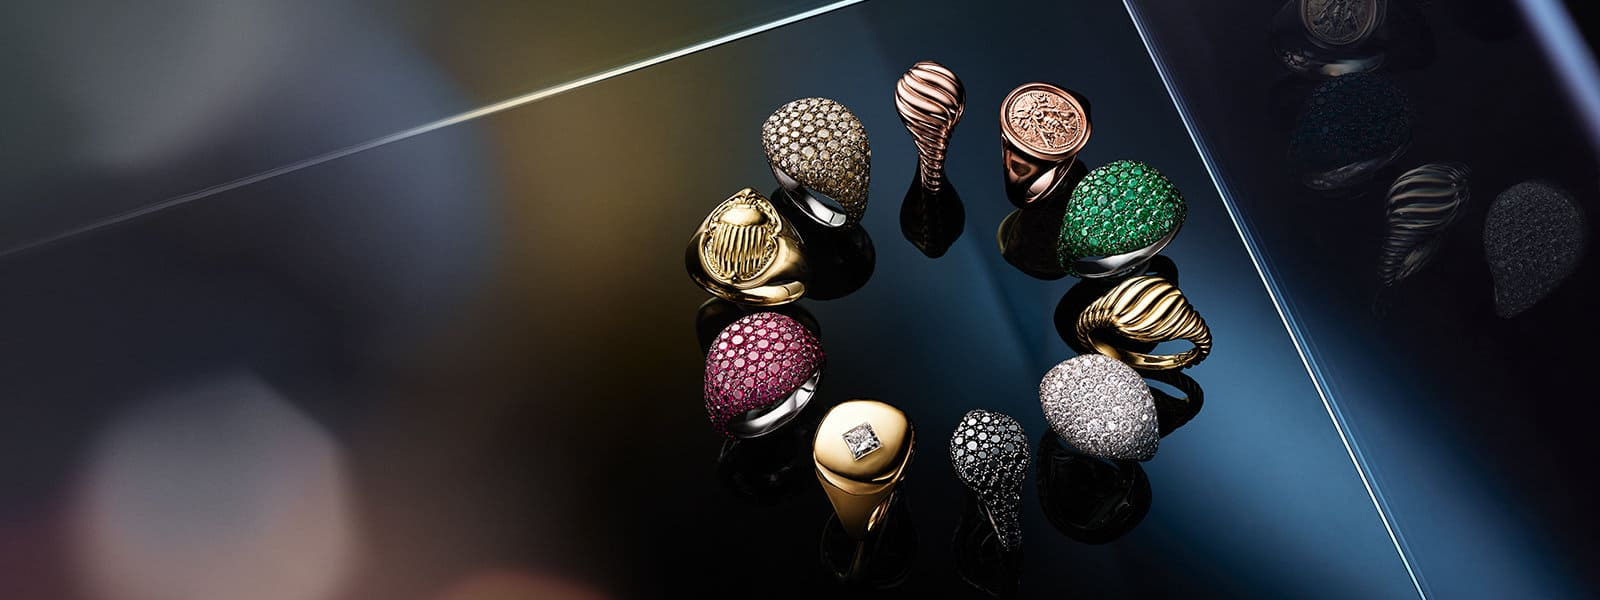 A color photograph shows 10 David Yurman pinky rings in 18K white or yellow gold with or without pavé white, cognac or black diamonds, pavé emeralds or pavé rubies. The jewelry is arranged in a circle on top of a dark tiled surface. The background displays multi-colored reflections of light and radiant reflections of the jewelry.